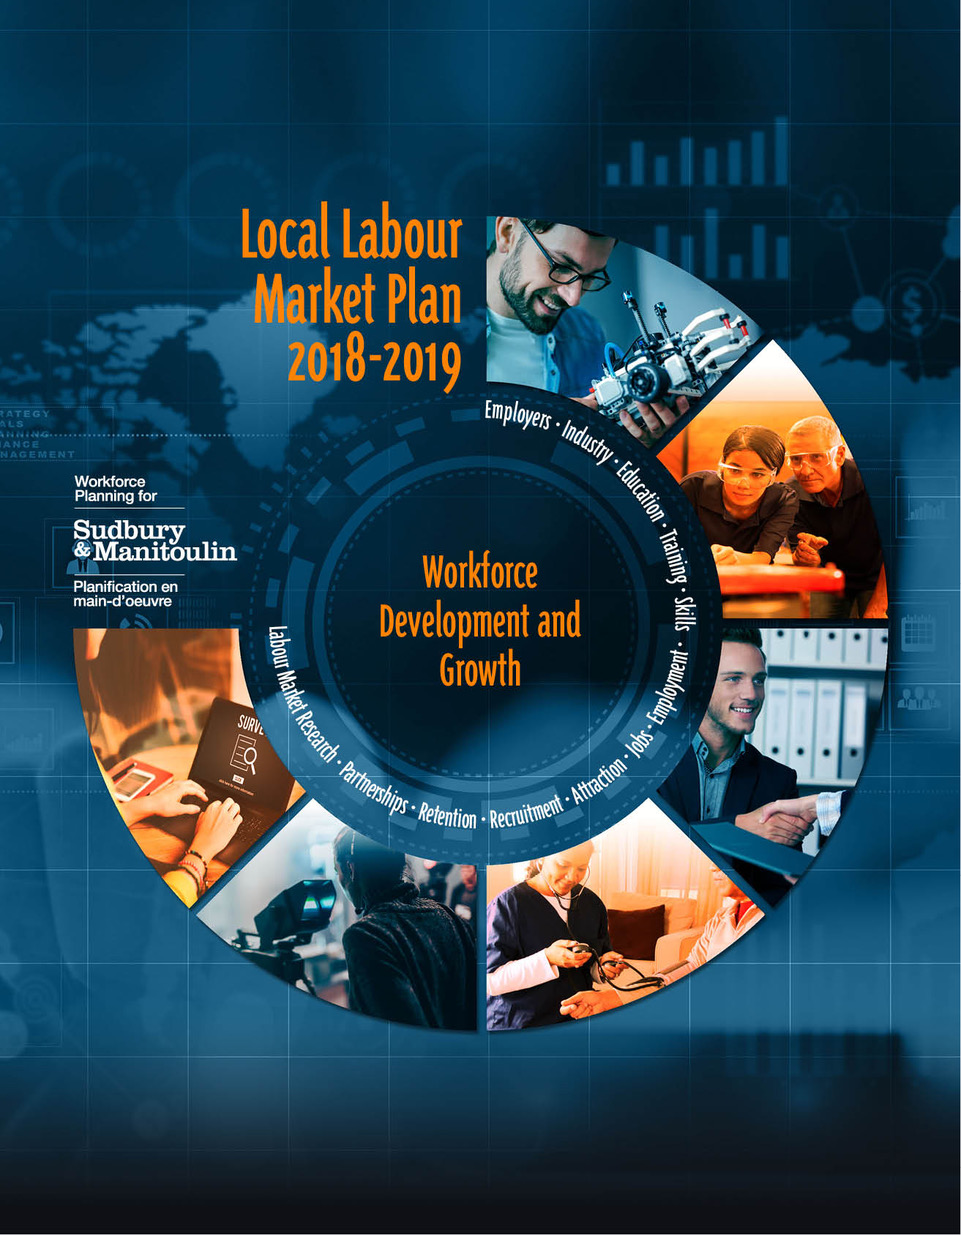 Local Labour Market Plan 2017-2018